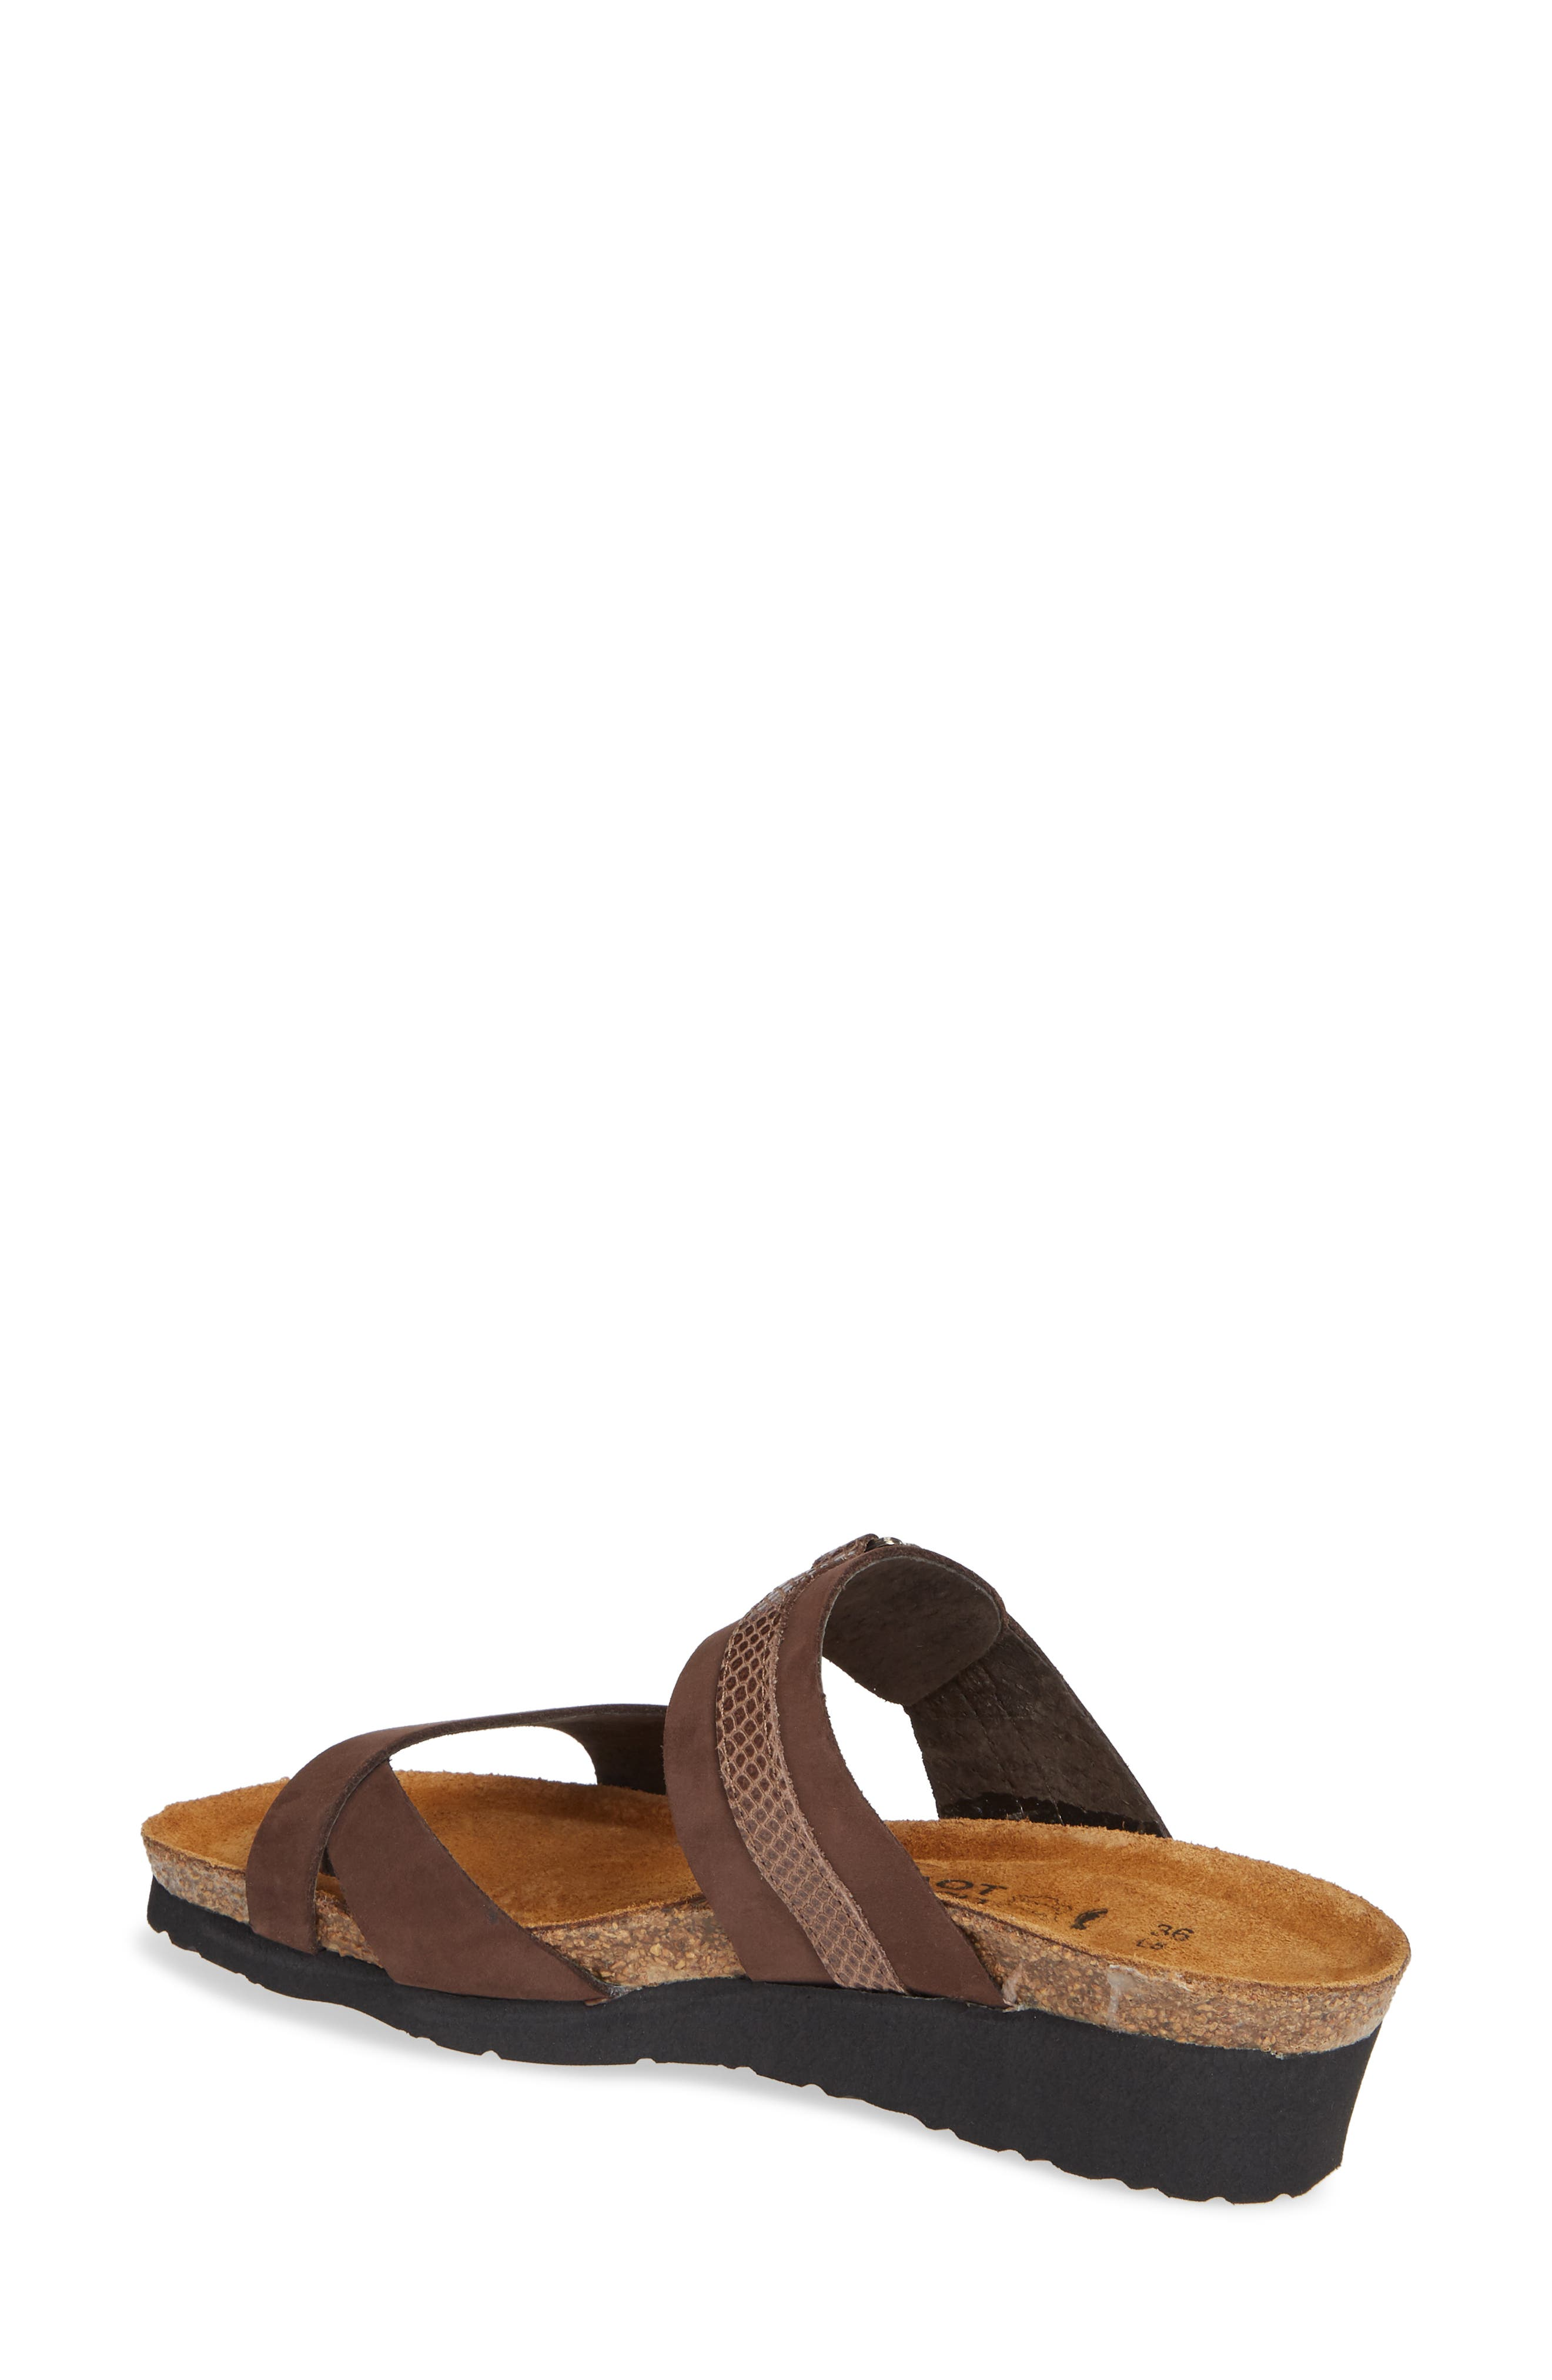 Jessica Sandal,                             Alternate thumbnail 2, color,                             COFFEE BEAN NUBUCK LEATHER